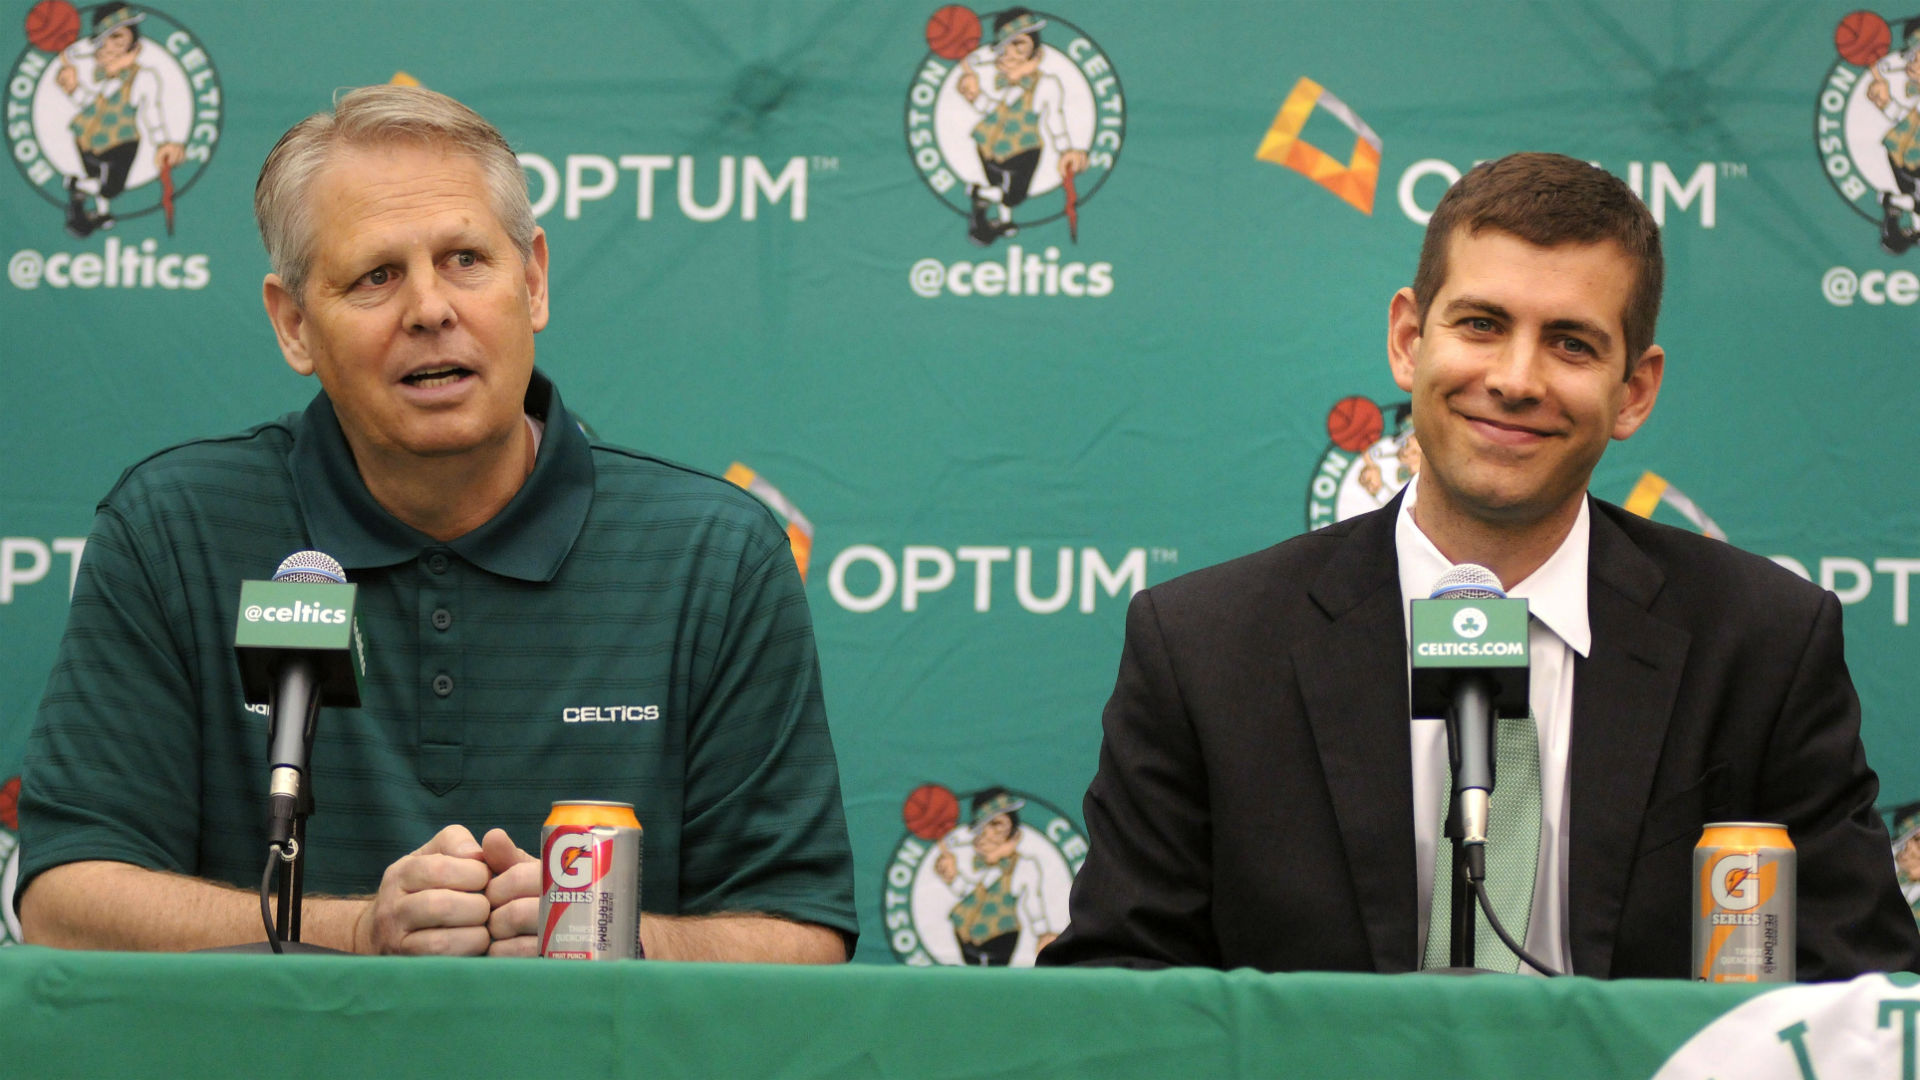 Celtics exploring 'different opportunities' amid uncertainty over Irving and Horford – Ainge